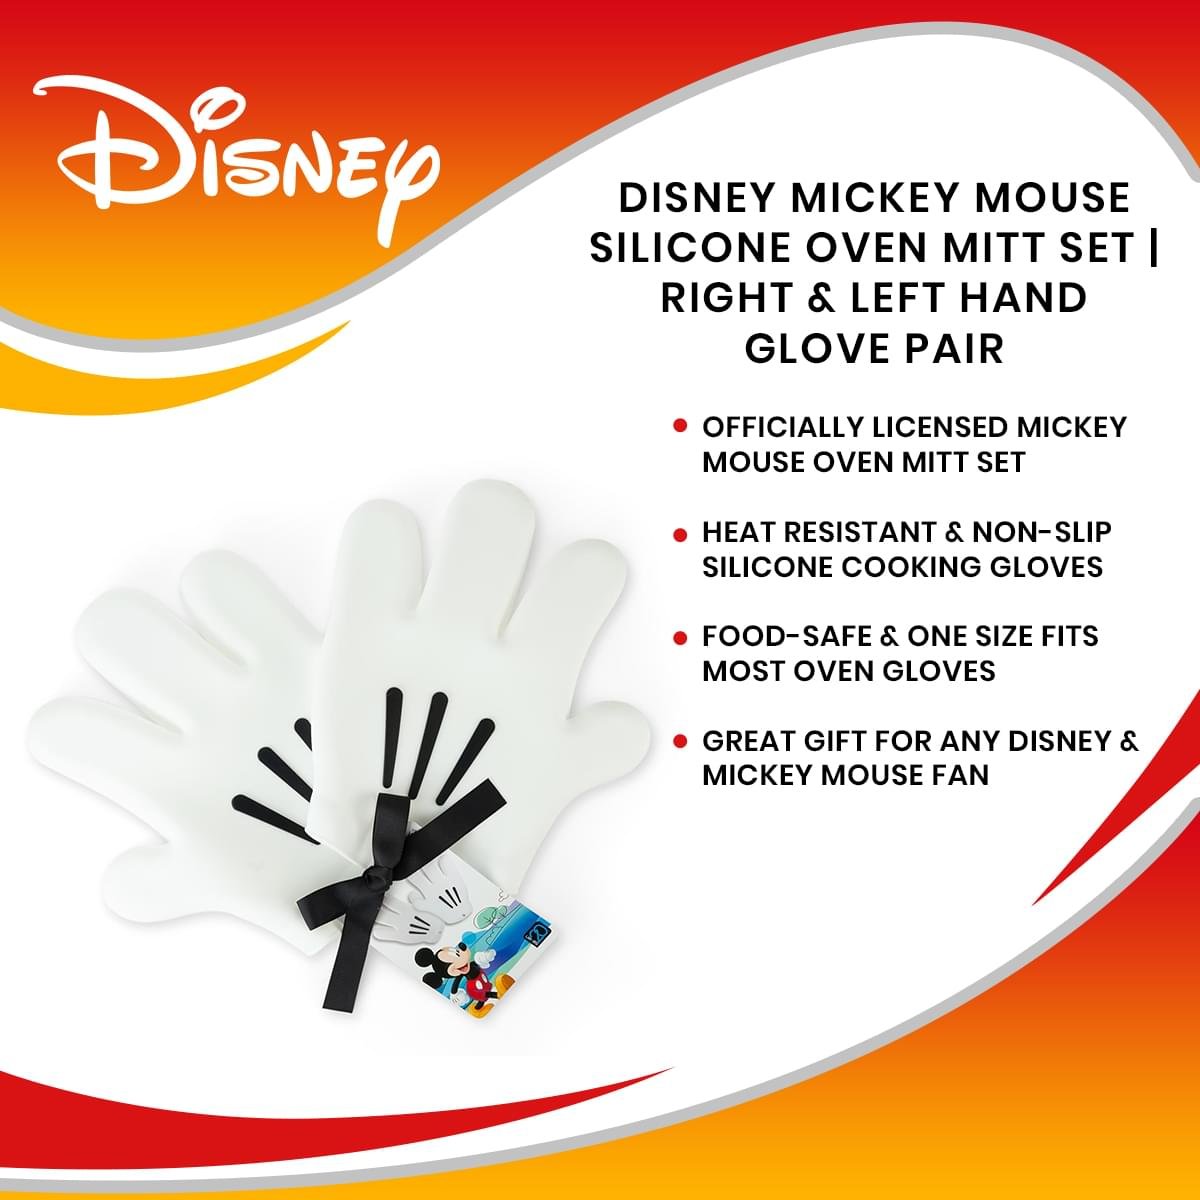 Disney Mickey Mouse Silicone Oven Mitt Set | Right & Left Hand Glove Pair